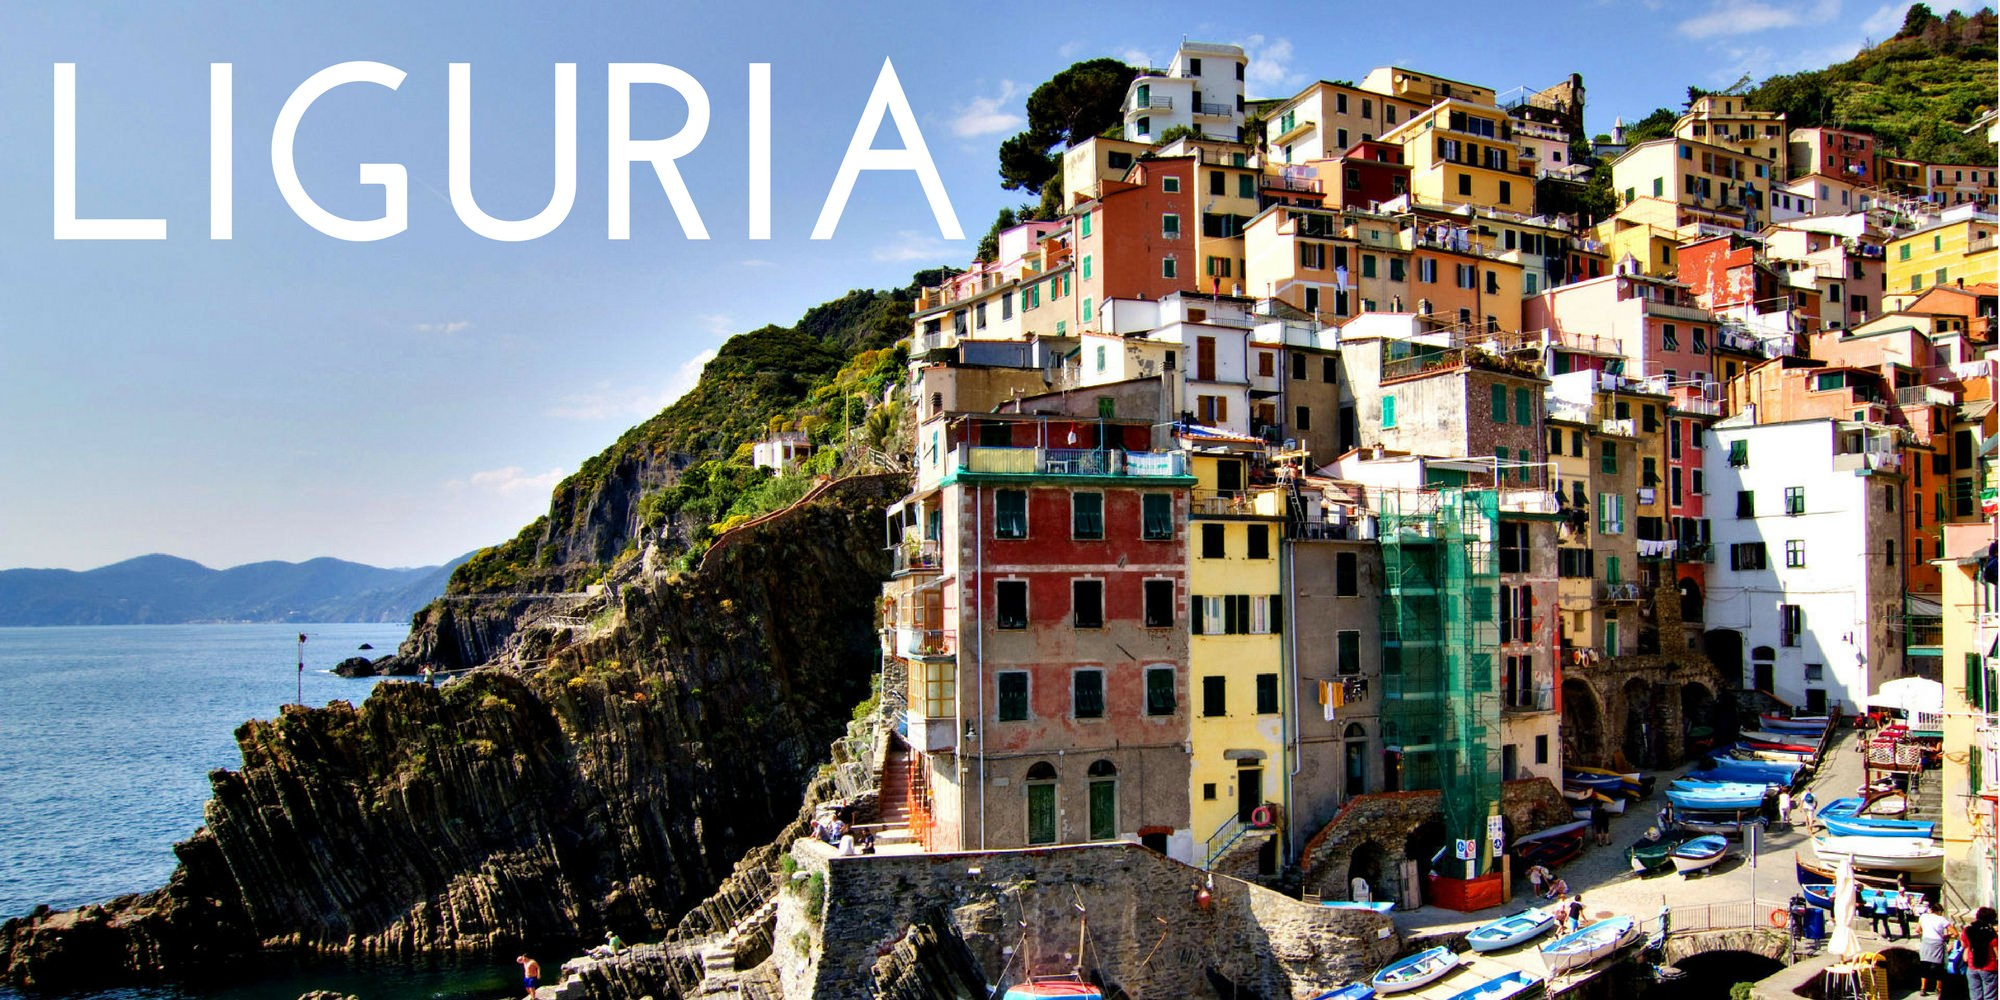 Liguria - Authentic Traveling - Header